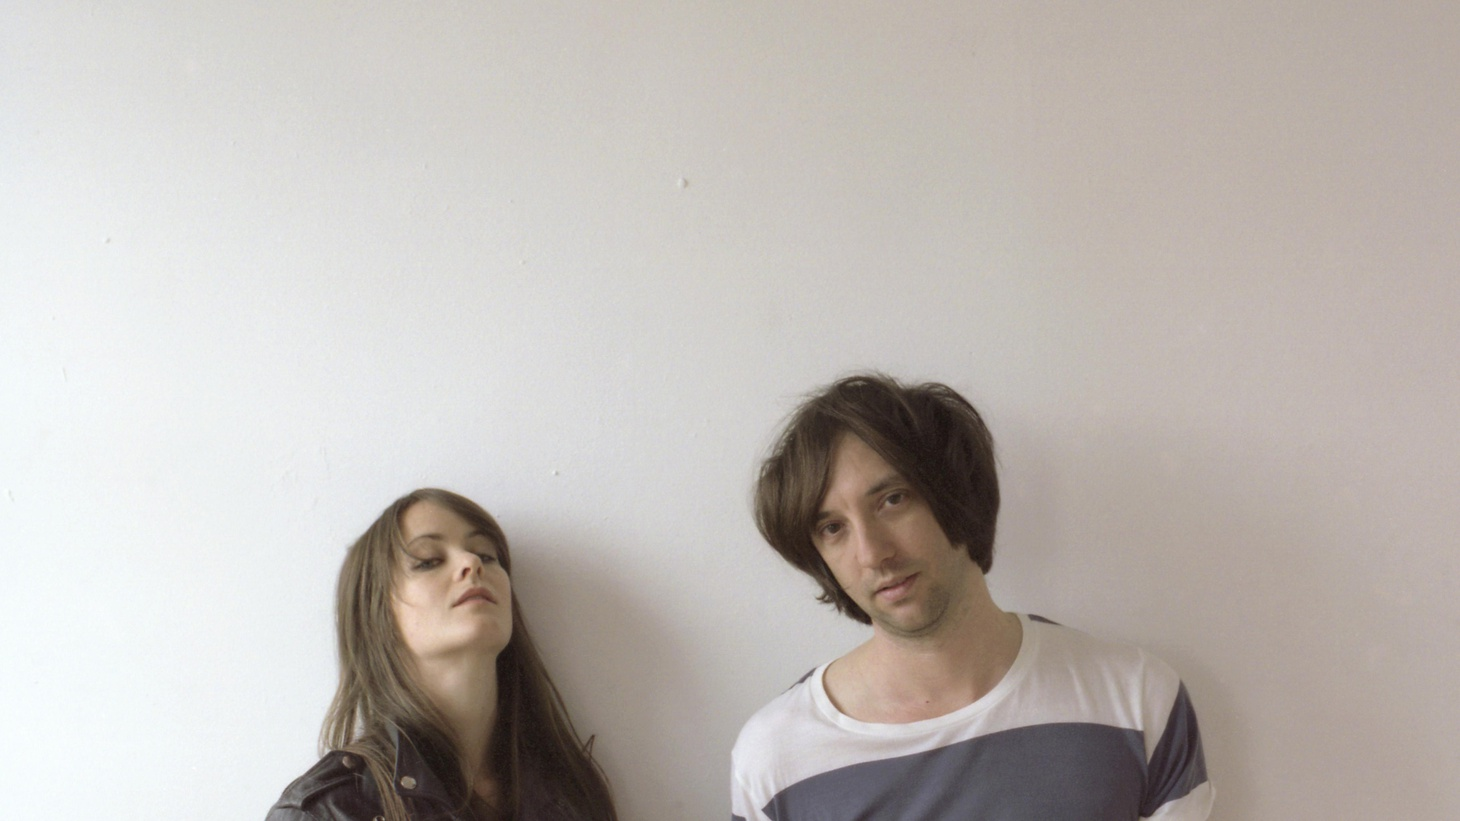 2010 has been a banner year for attractive young boy/girl duos. 2010 has also been an interesting year in that many new bands are being overt about their influences, while still creating something fresh and exciting. The Hundred in the Hands fits easily into both of these categories.